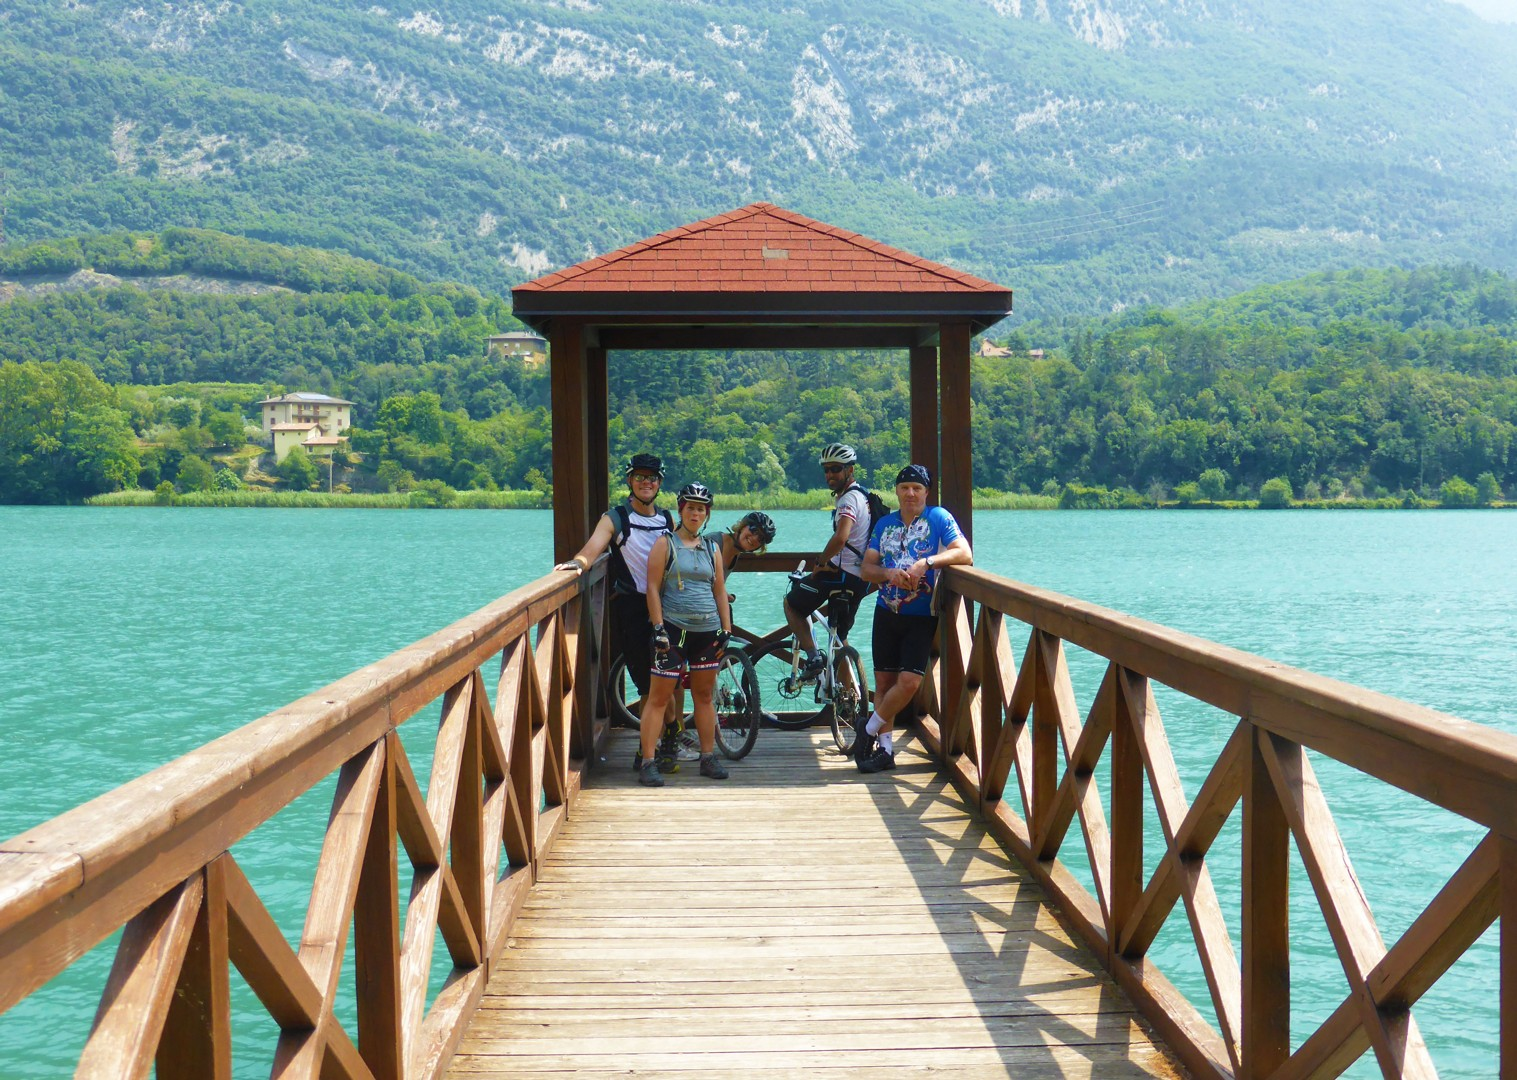 enjoy-ice-cream-shores-lake-garda-cycling-holiday.jpg - Austria and Italy - La Via Claudia - Guided Leisure Cycling Holiday - Leisure Cycling